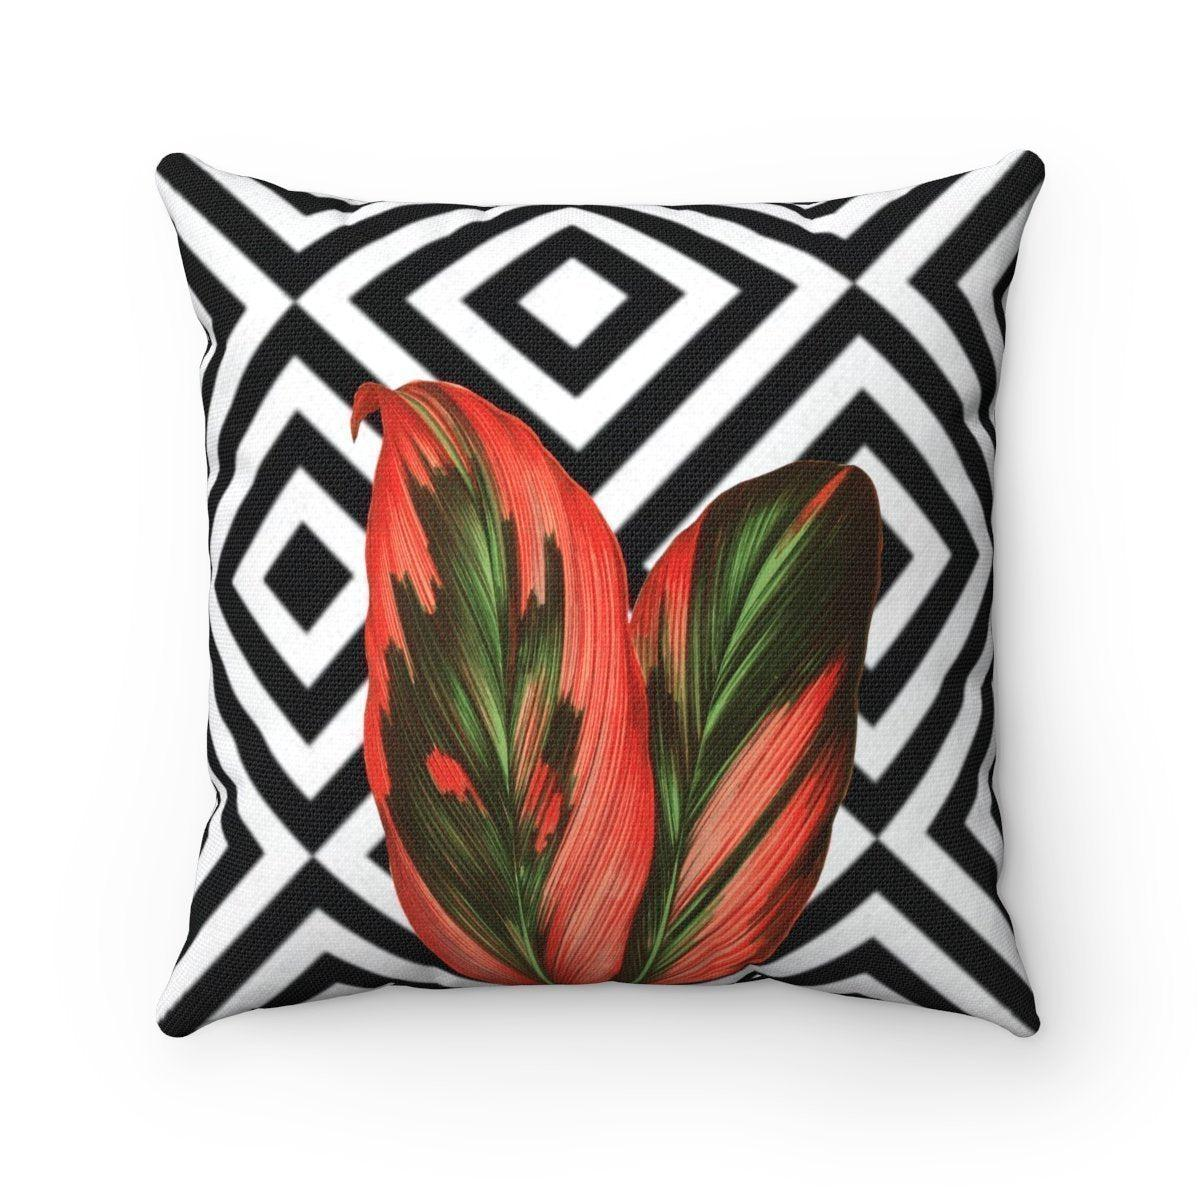 Luxury | leaves | floral abstract decorative cushion cover-Home Decor - Decorative Accents - Pillows & Throws - Decorative Pillows-Maison d'Elite-14x14-Très Elite